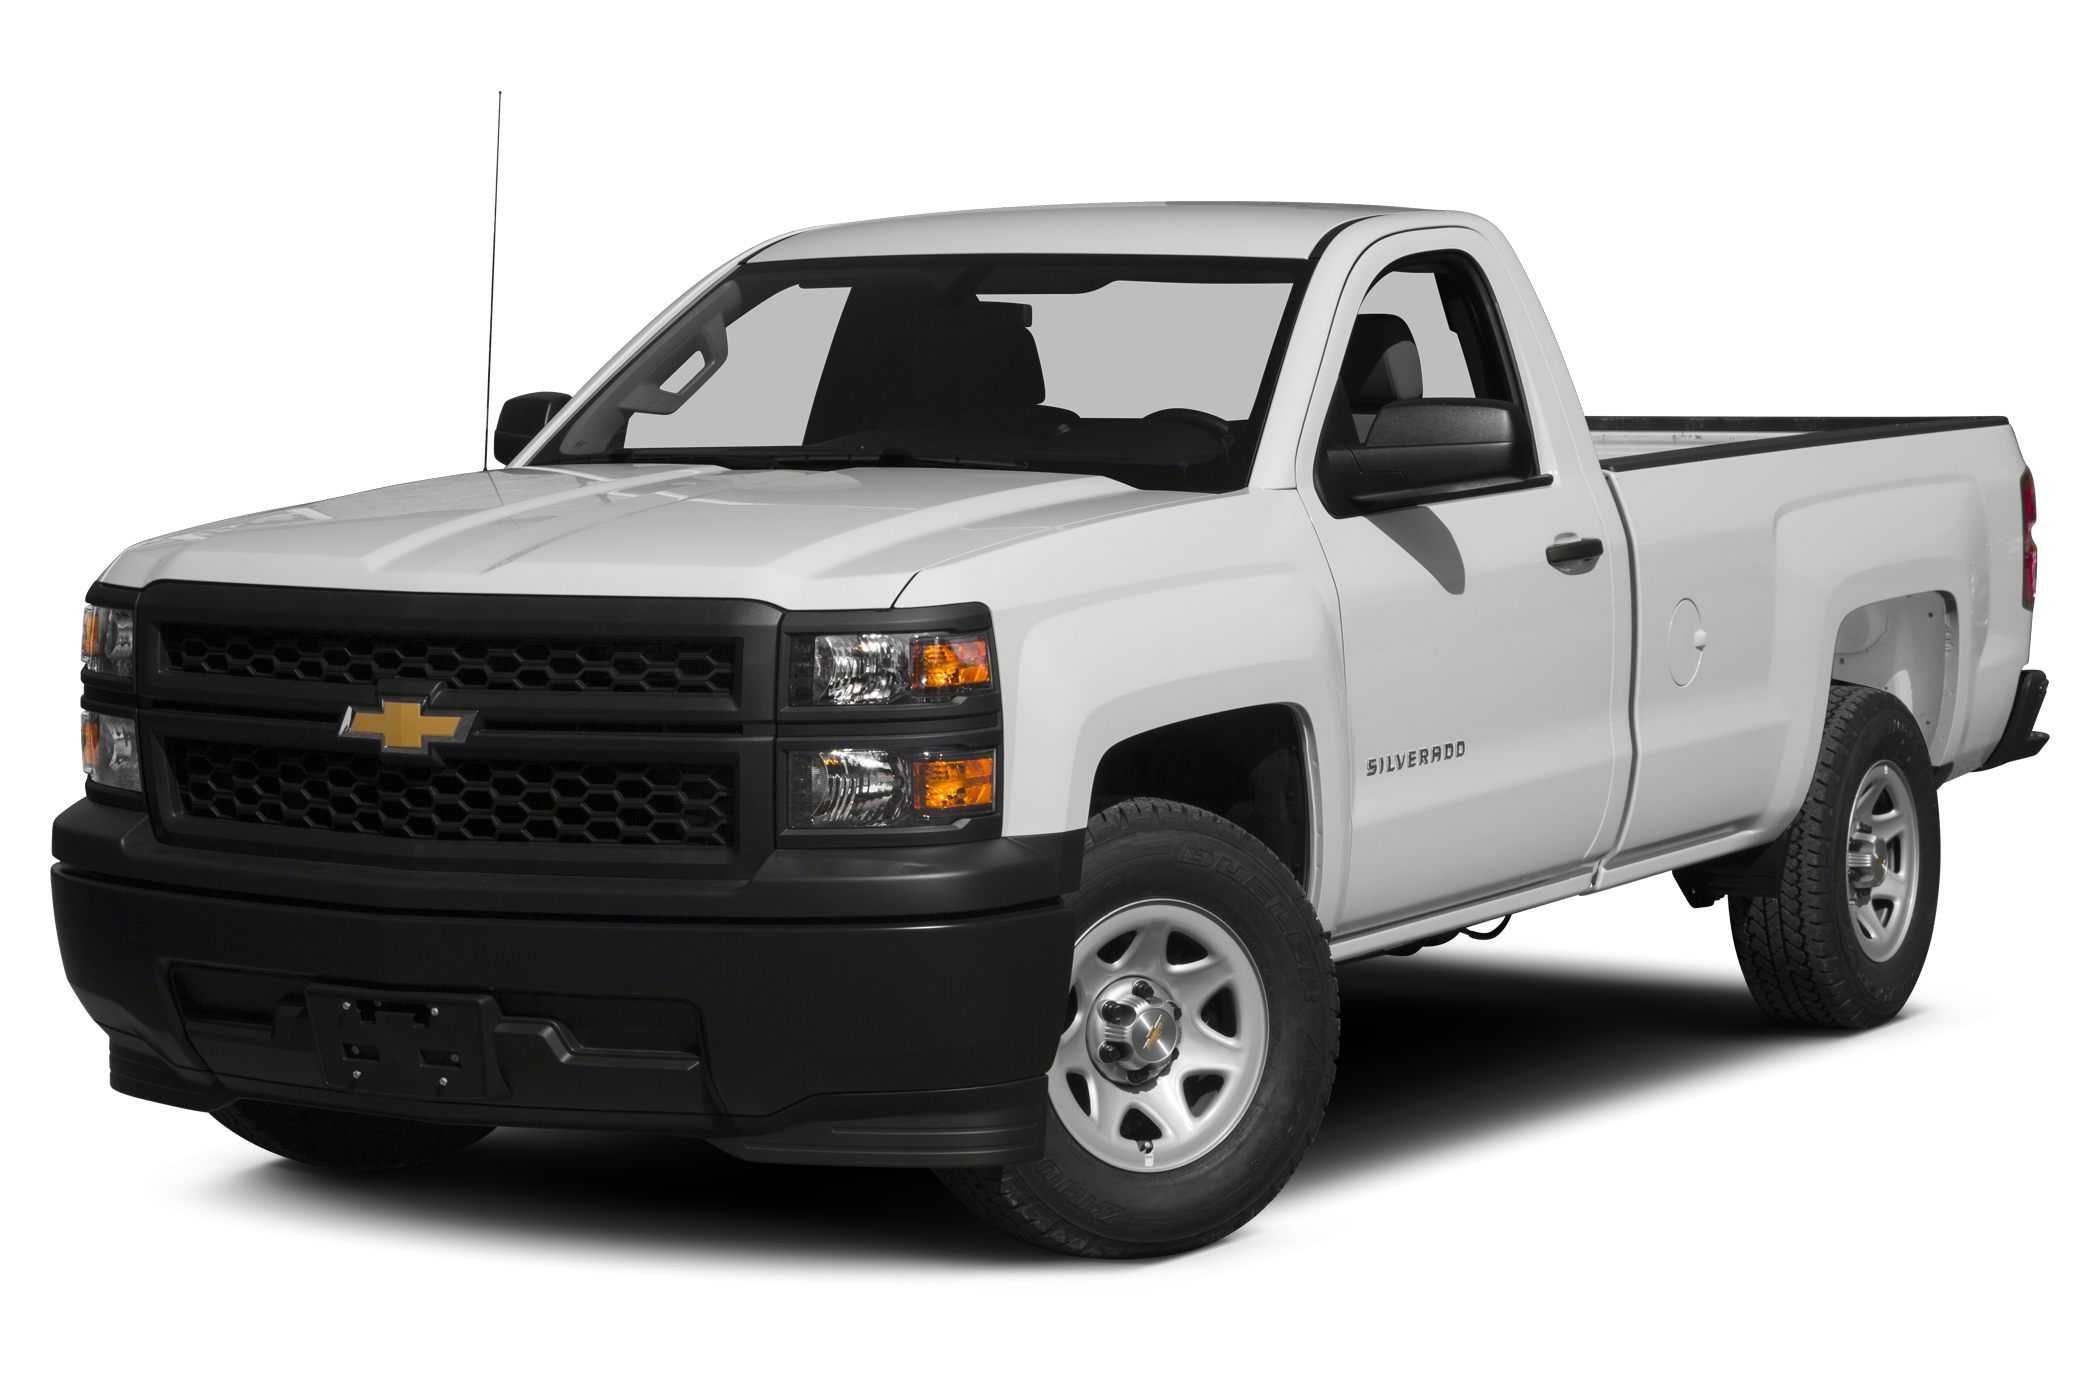 2015 Chevrolet Silverado 1500 1LT Crew Cab Pickup for sale in Tiffin for $46,755 with 0 miles.